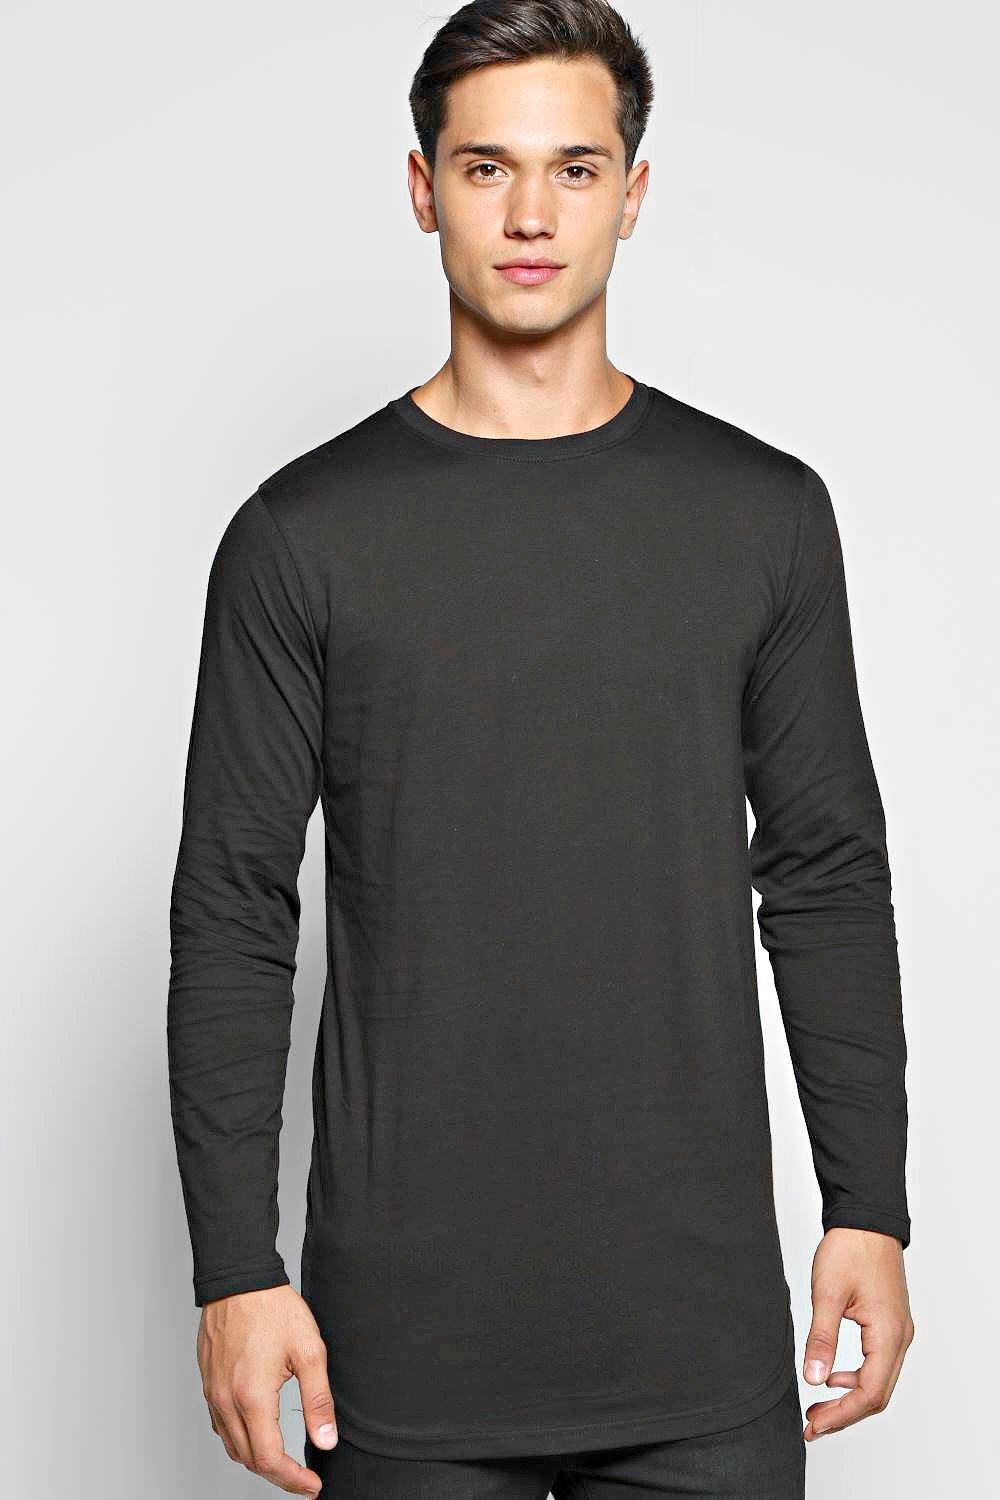 a3acca526 Mens Black Long Sleeve Longline T Shirt with Scoop Hem. Hover to zoom